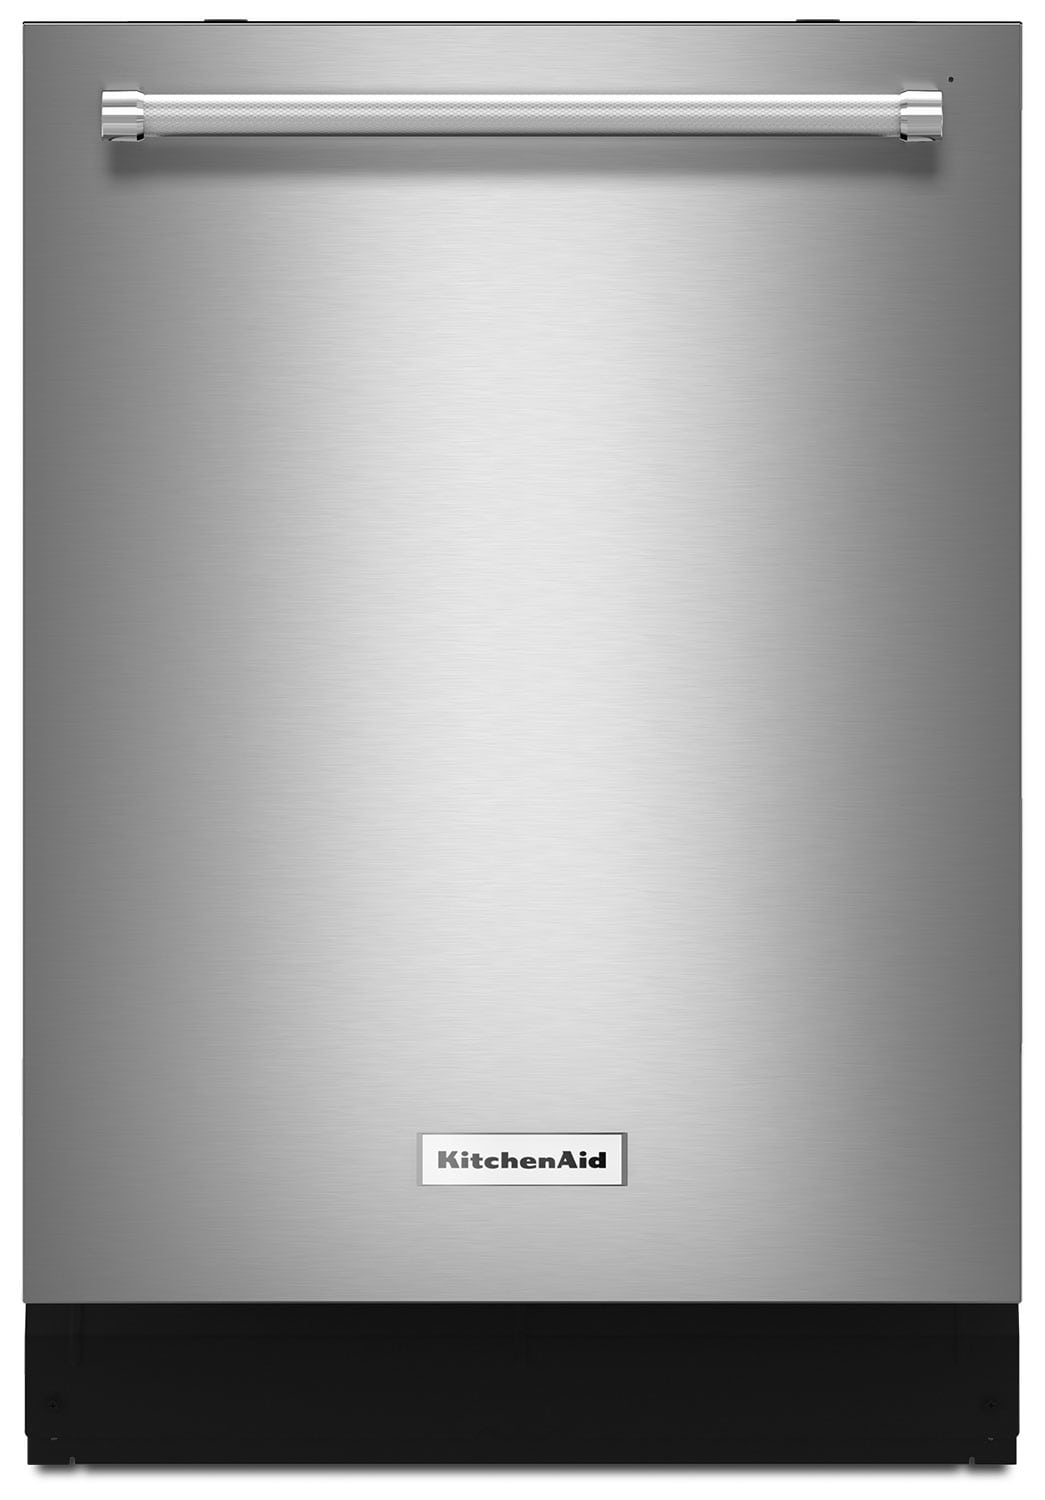 "KitchenAid 24"" Dishwasher with Dynamic Wash Arm - Stainless Steel"